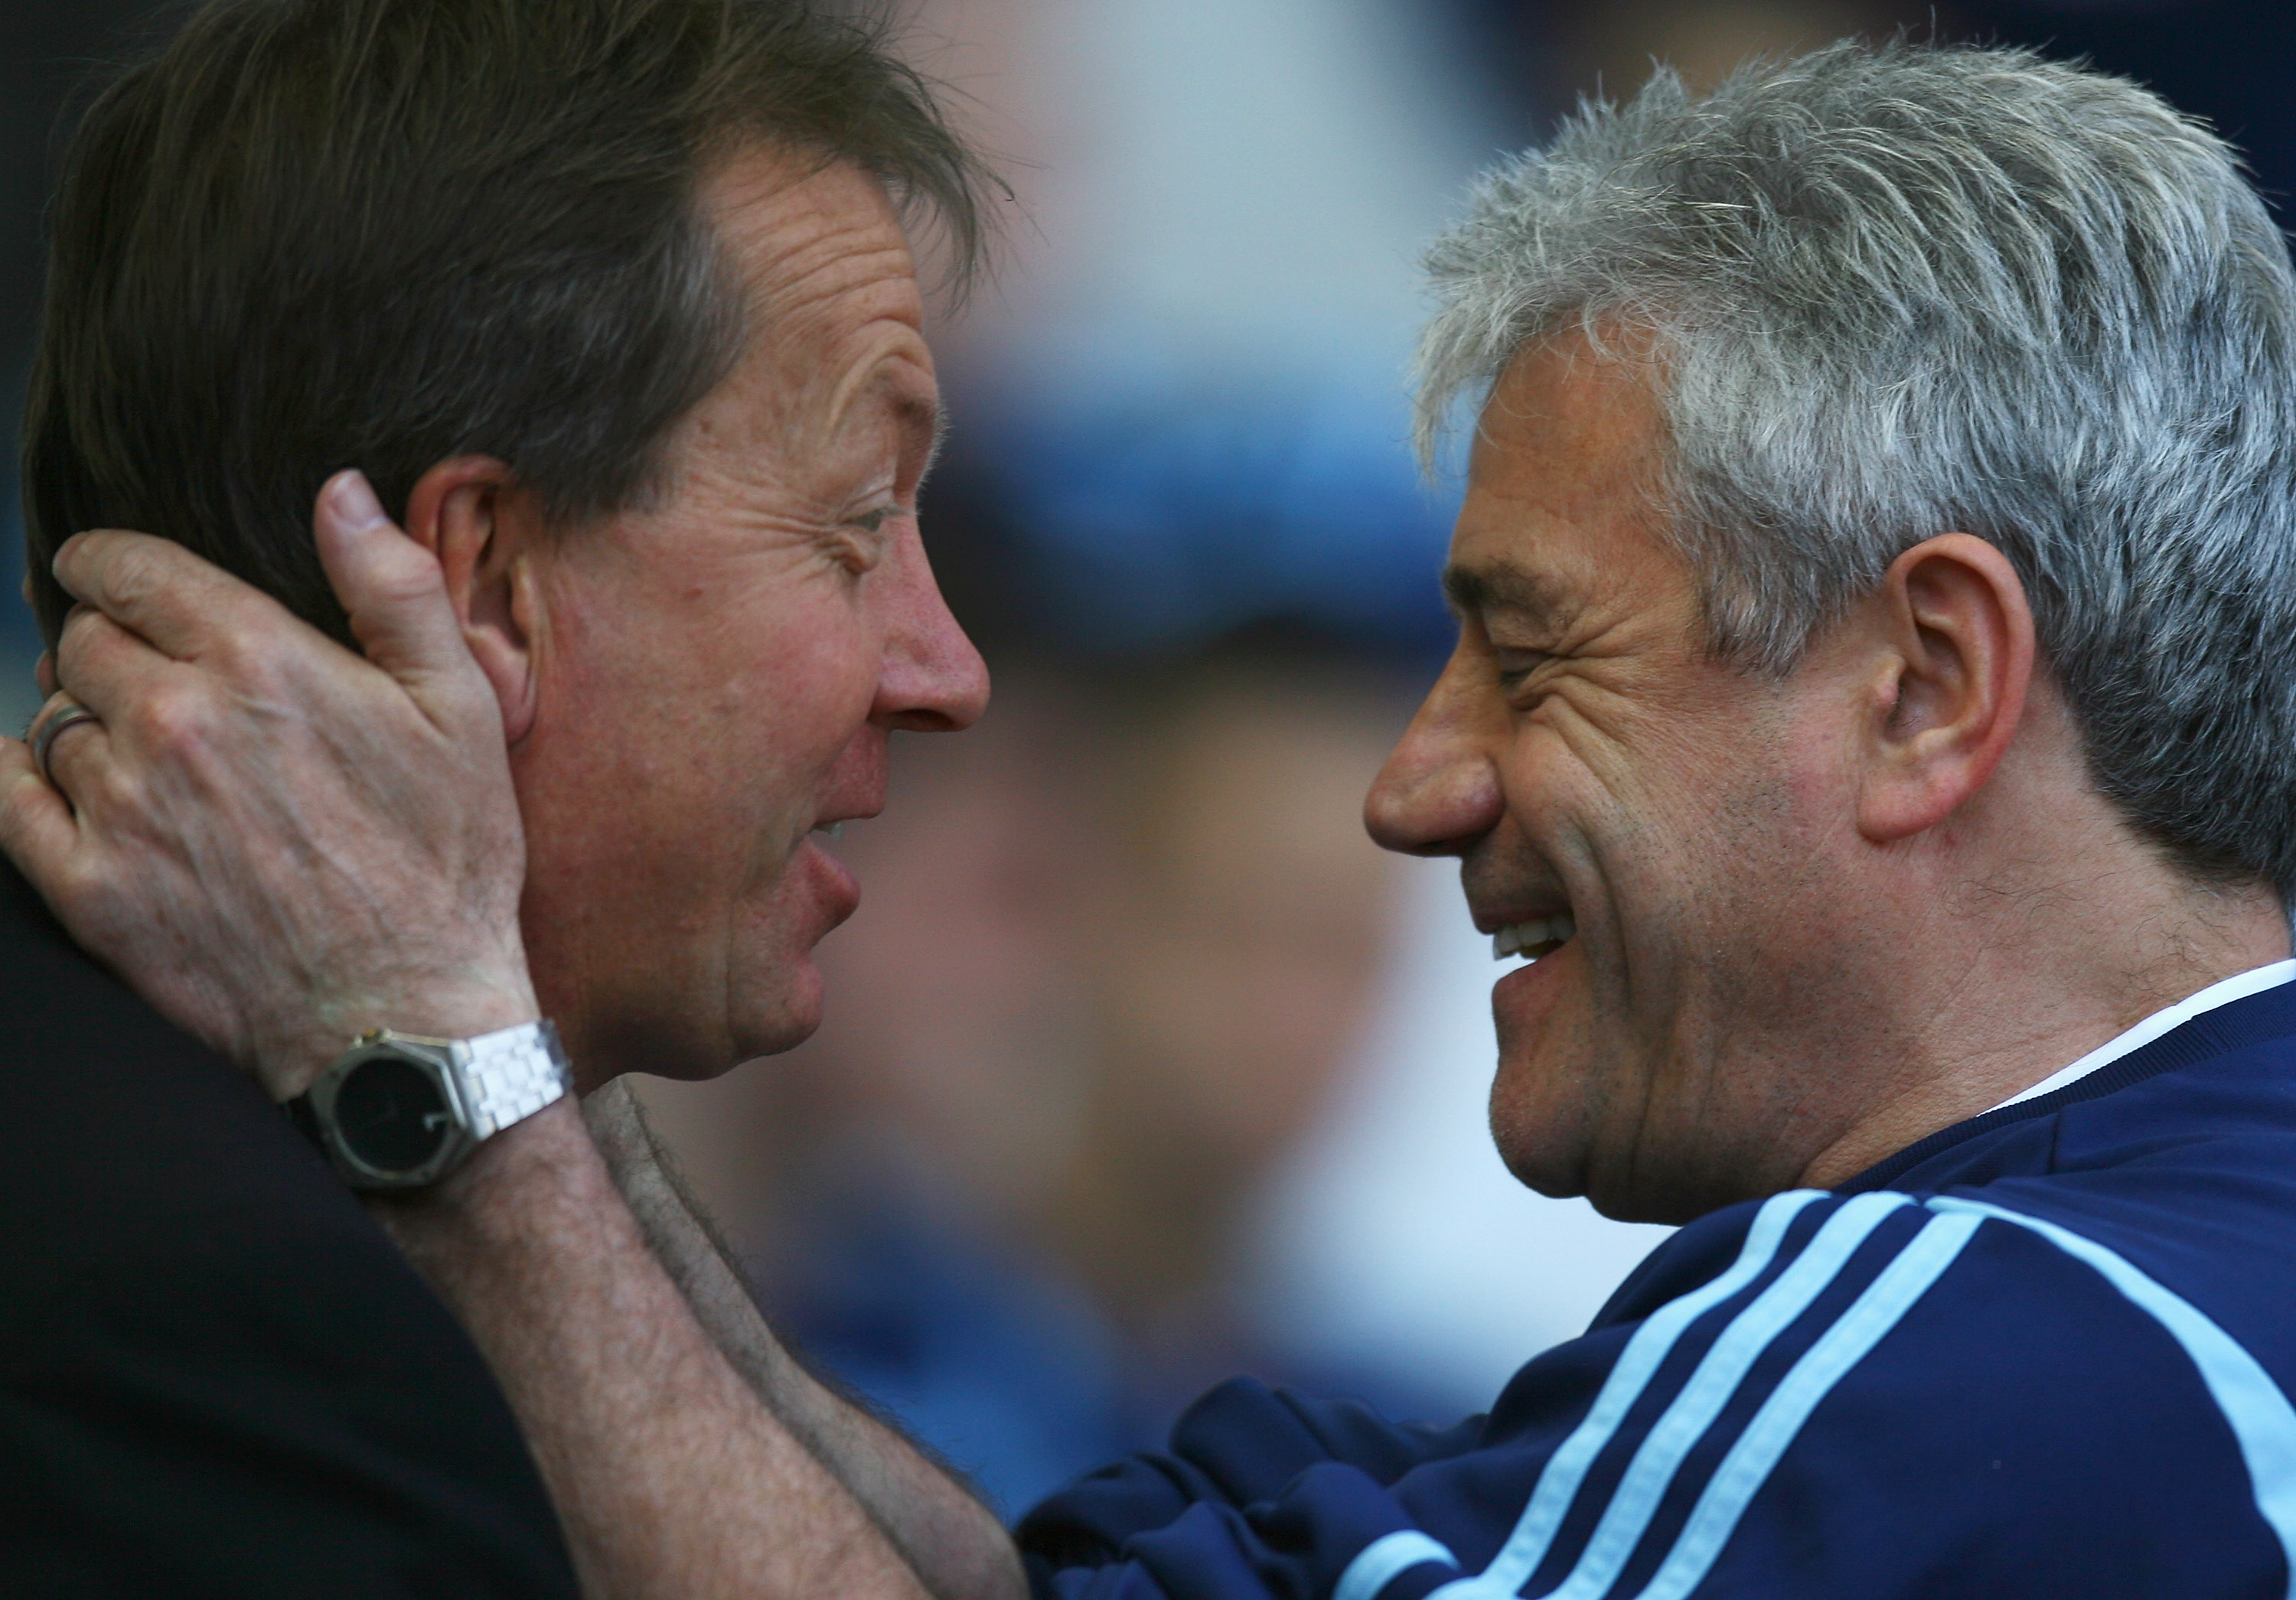 Keegan & Curbishley: Managers without voices or sympathy